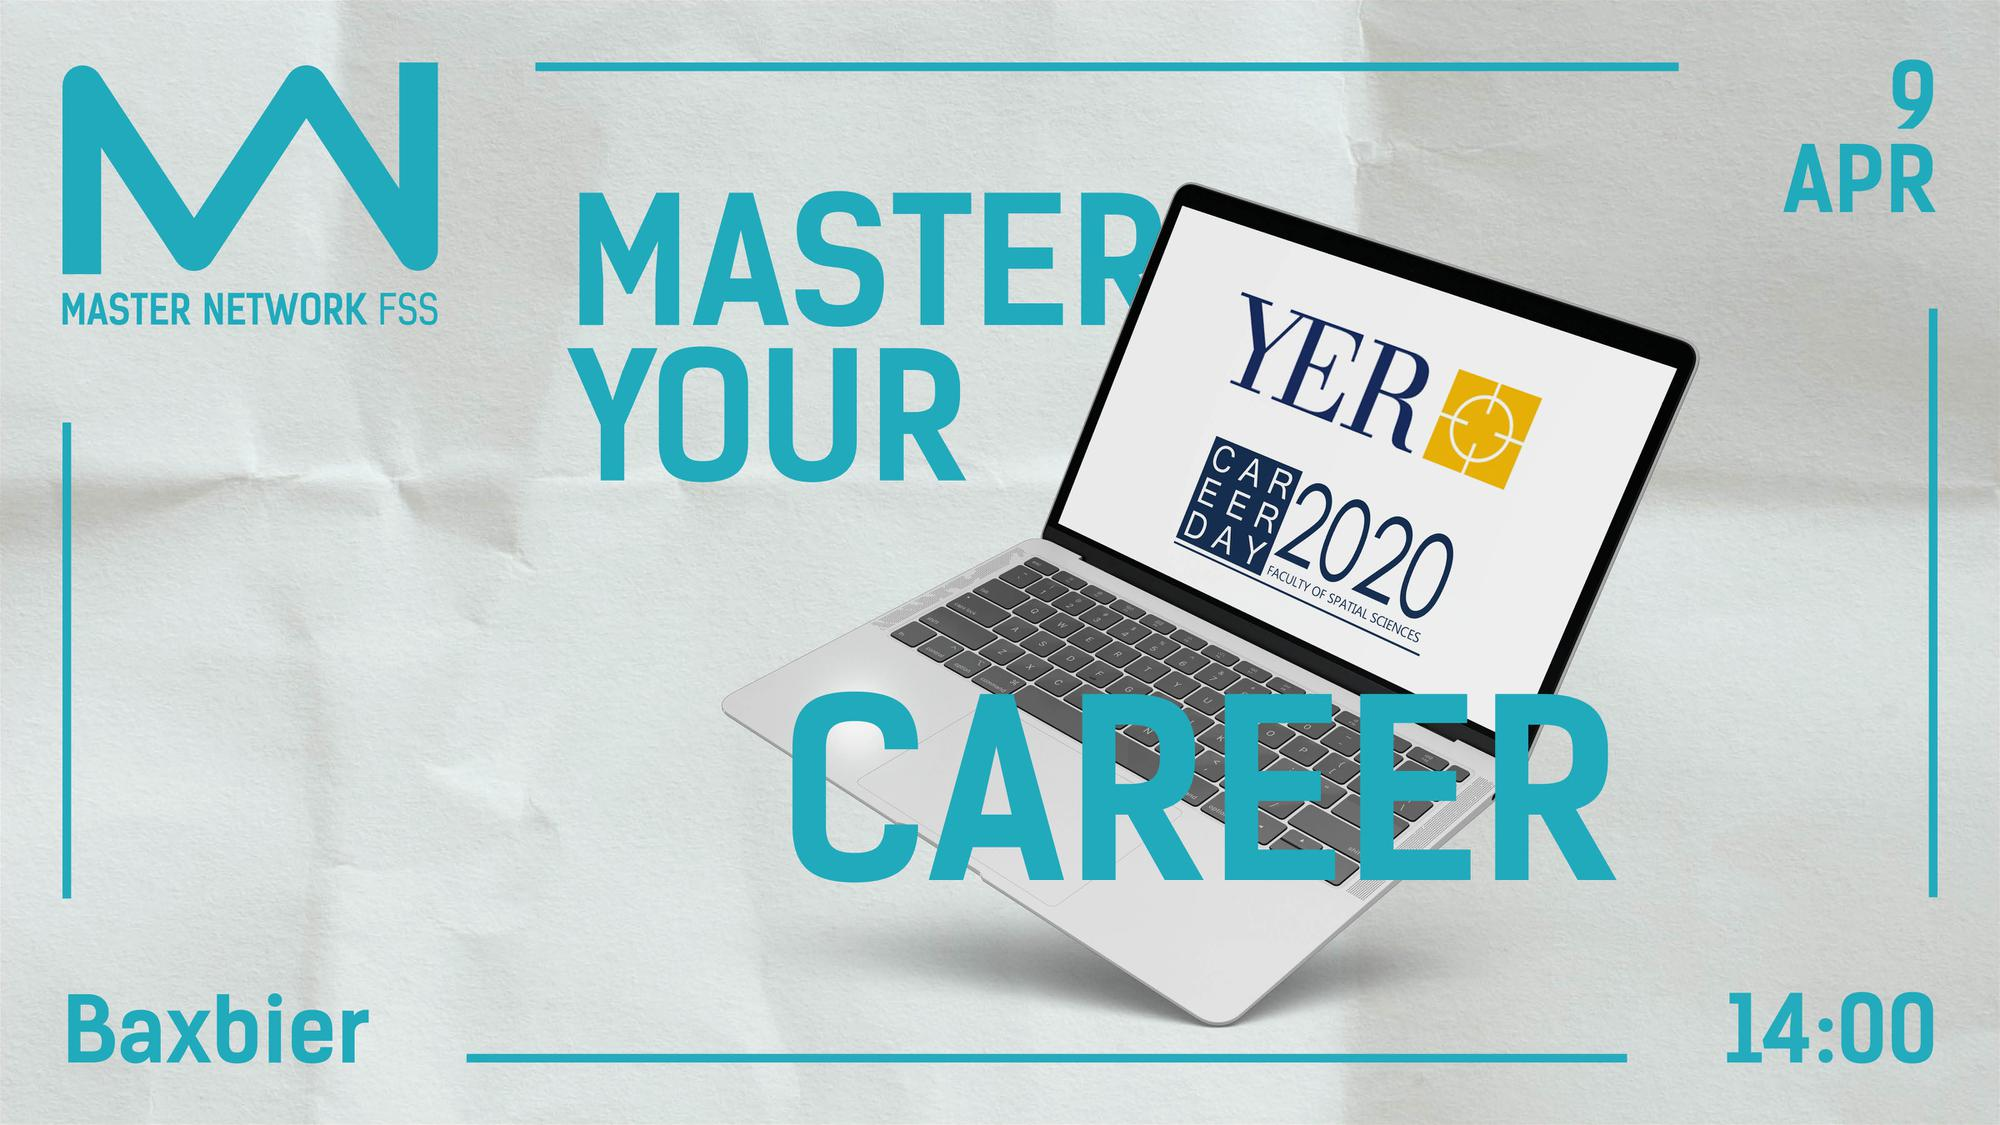 CANCELED: Master your Career